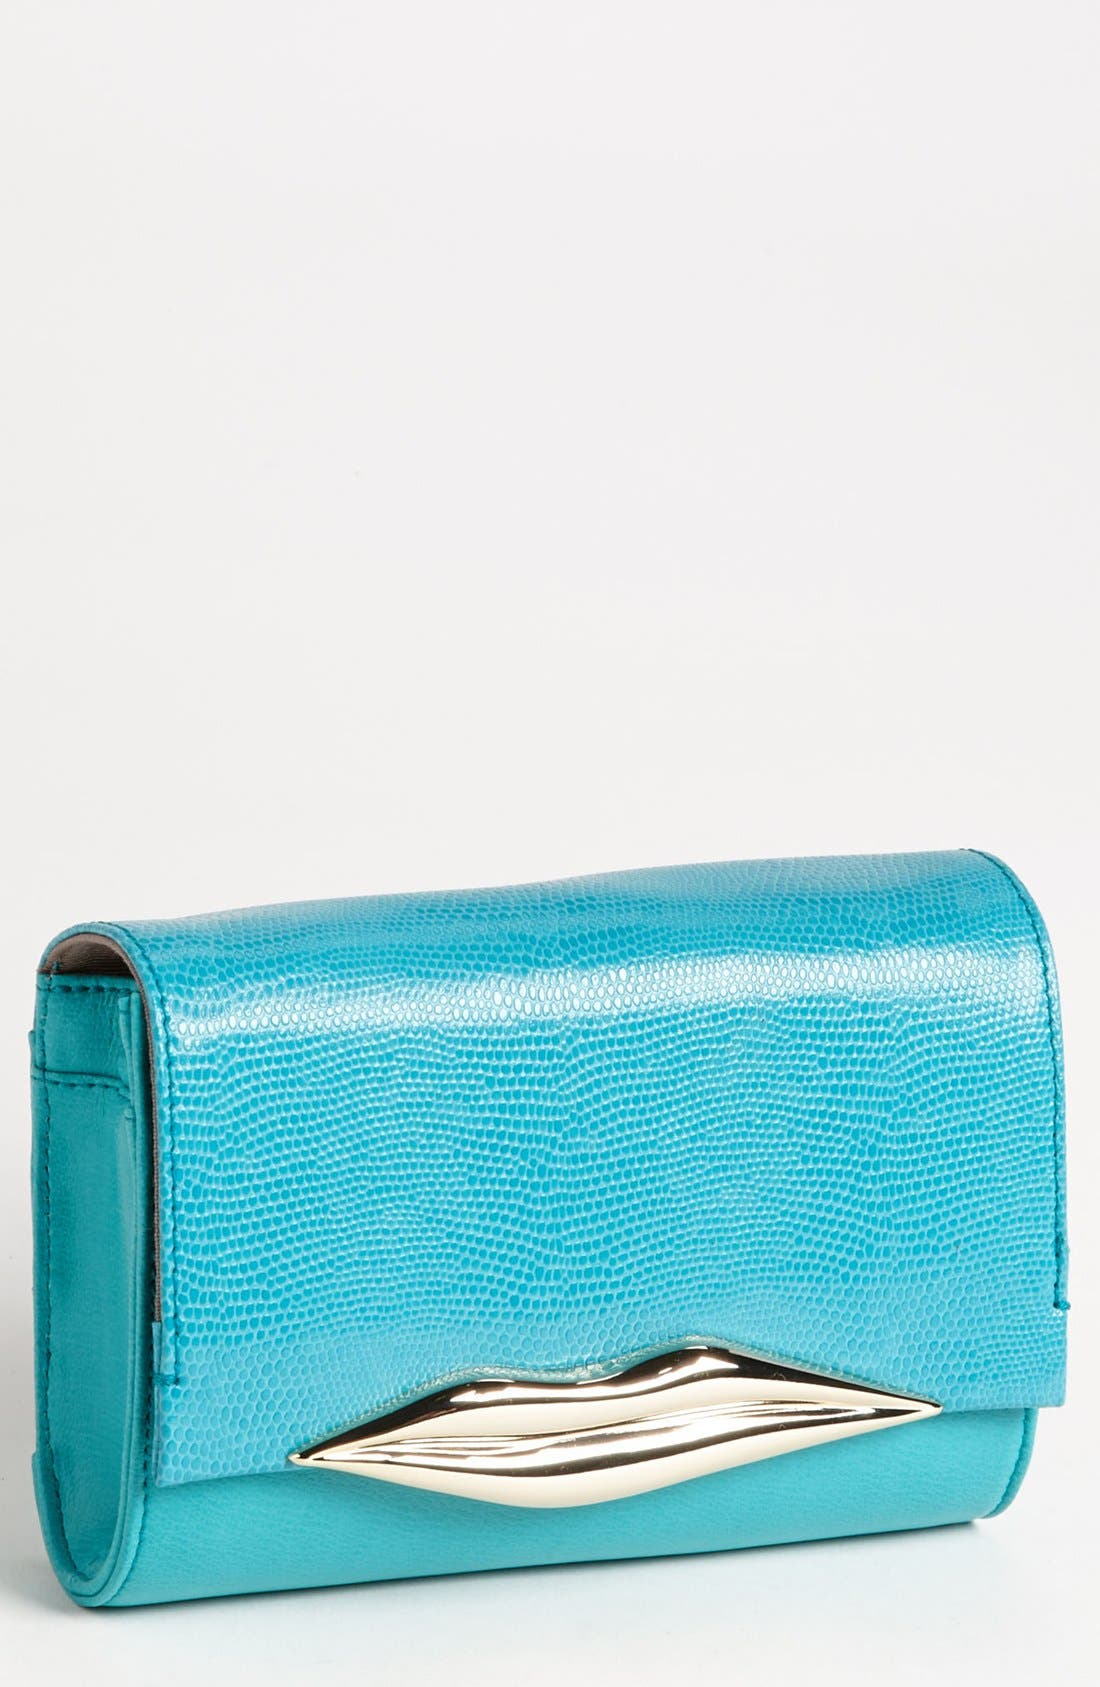 Alternate Image 1 Selected - Diane von Furstenberg 'Lips - Mini' Embossed Leather Clutch